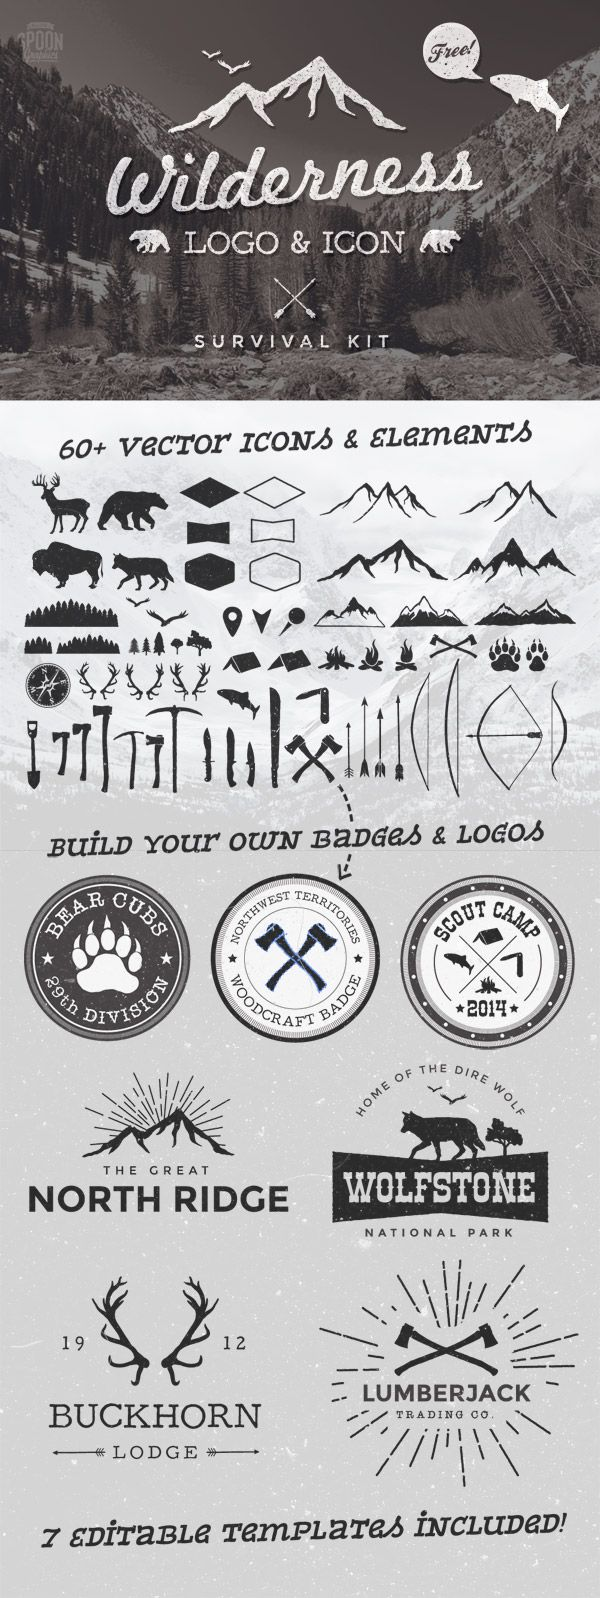 create my own logo free download 17 best ideas about logo design ...